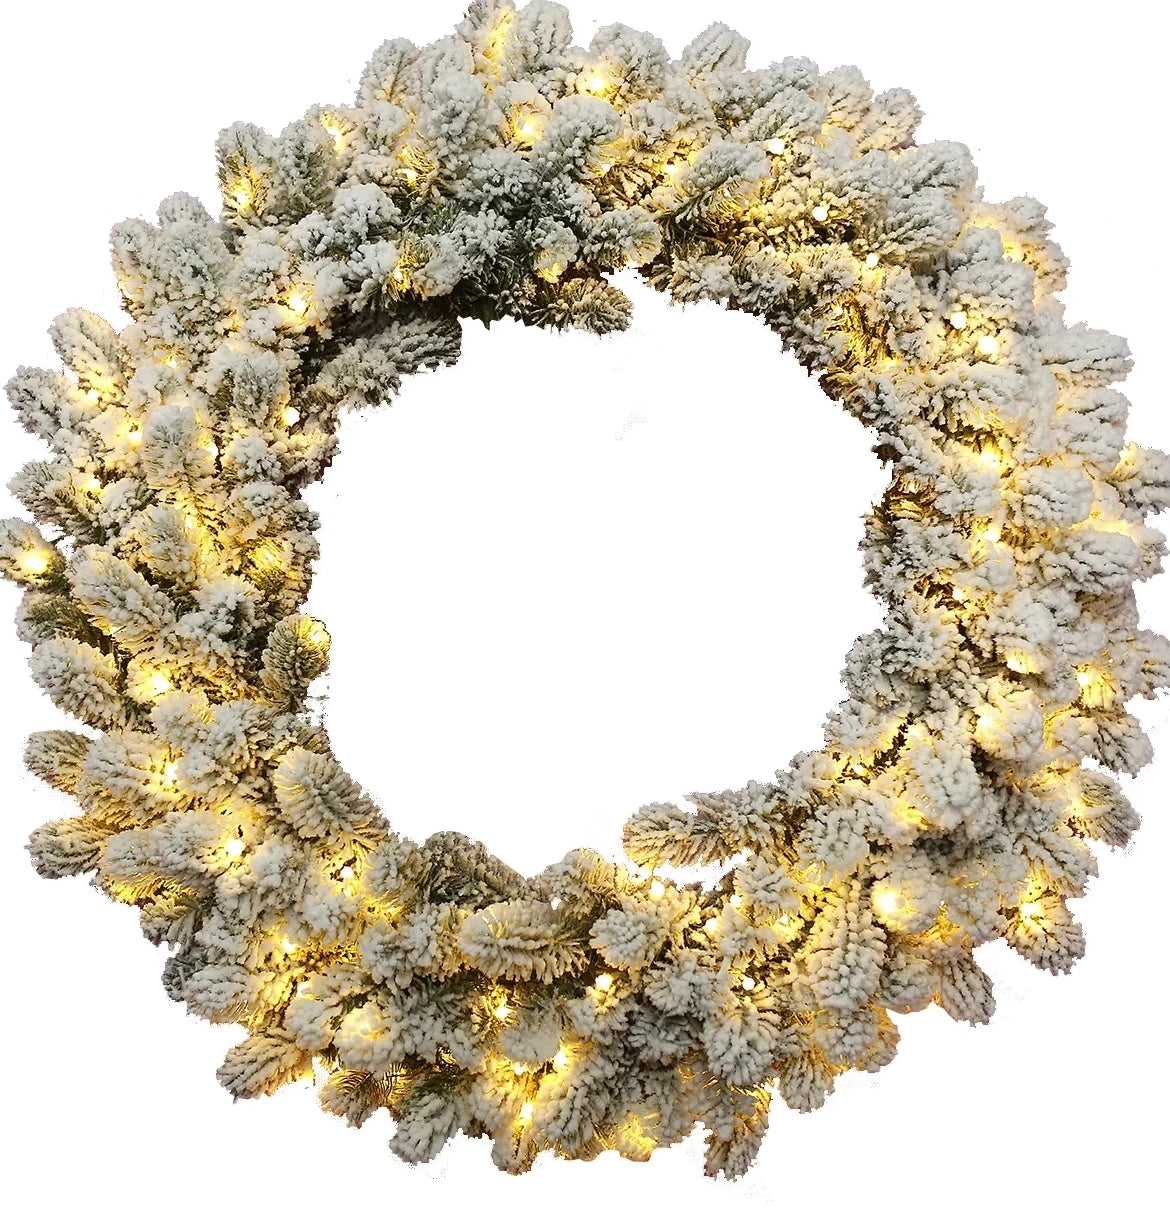 36″ King Flock Wreath With 150 Warm White LED Lights (Plug Operated)